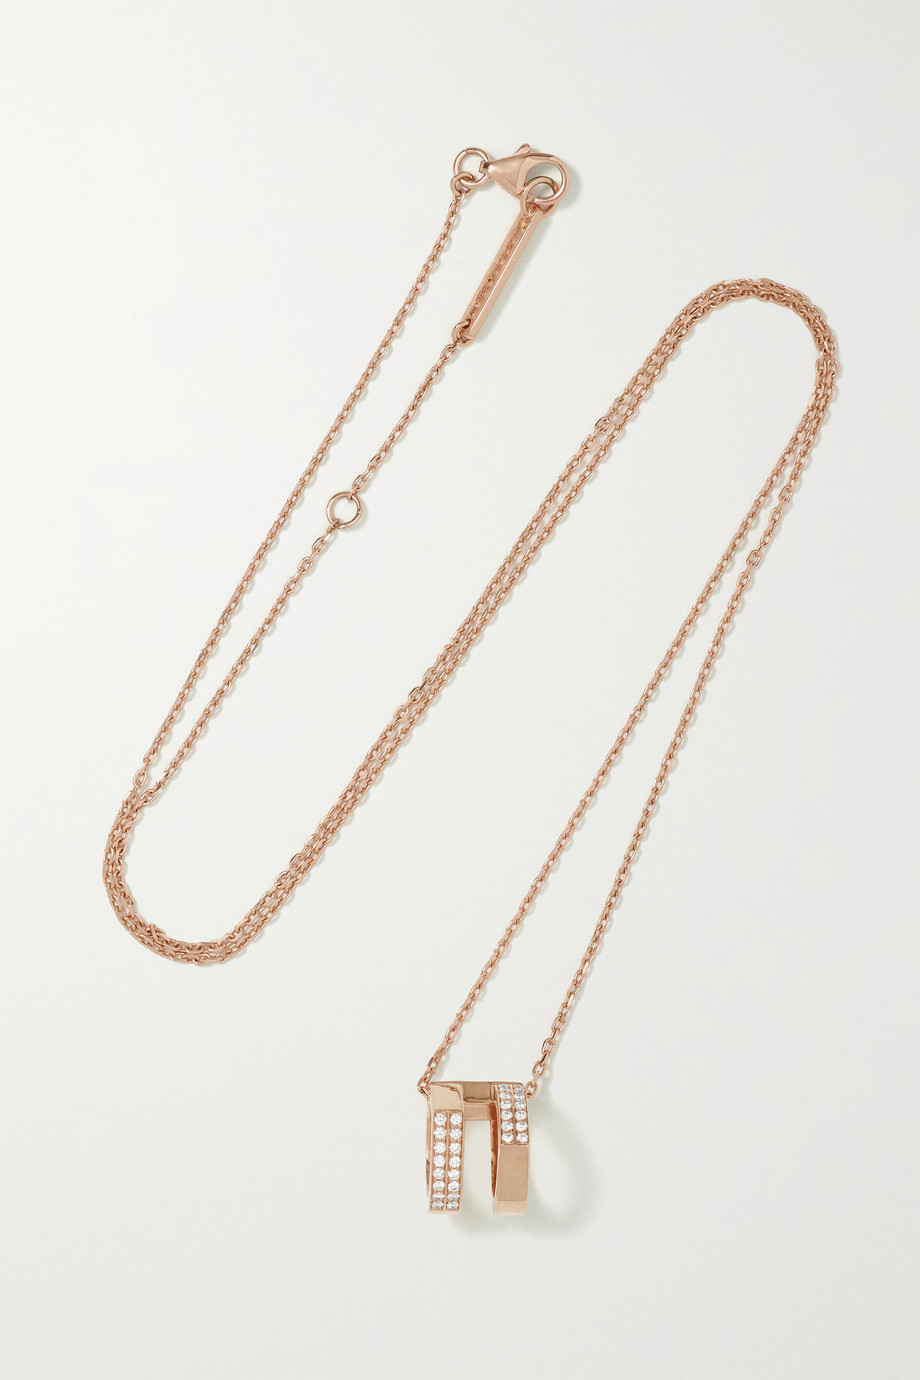 REPOSSI Antifer 18-karat rose gold diamond necklace